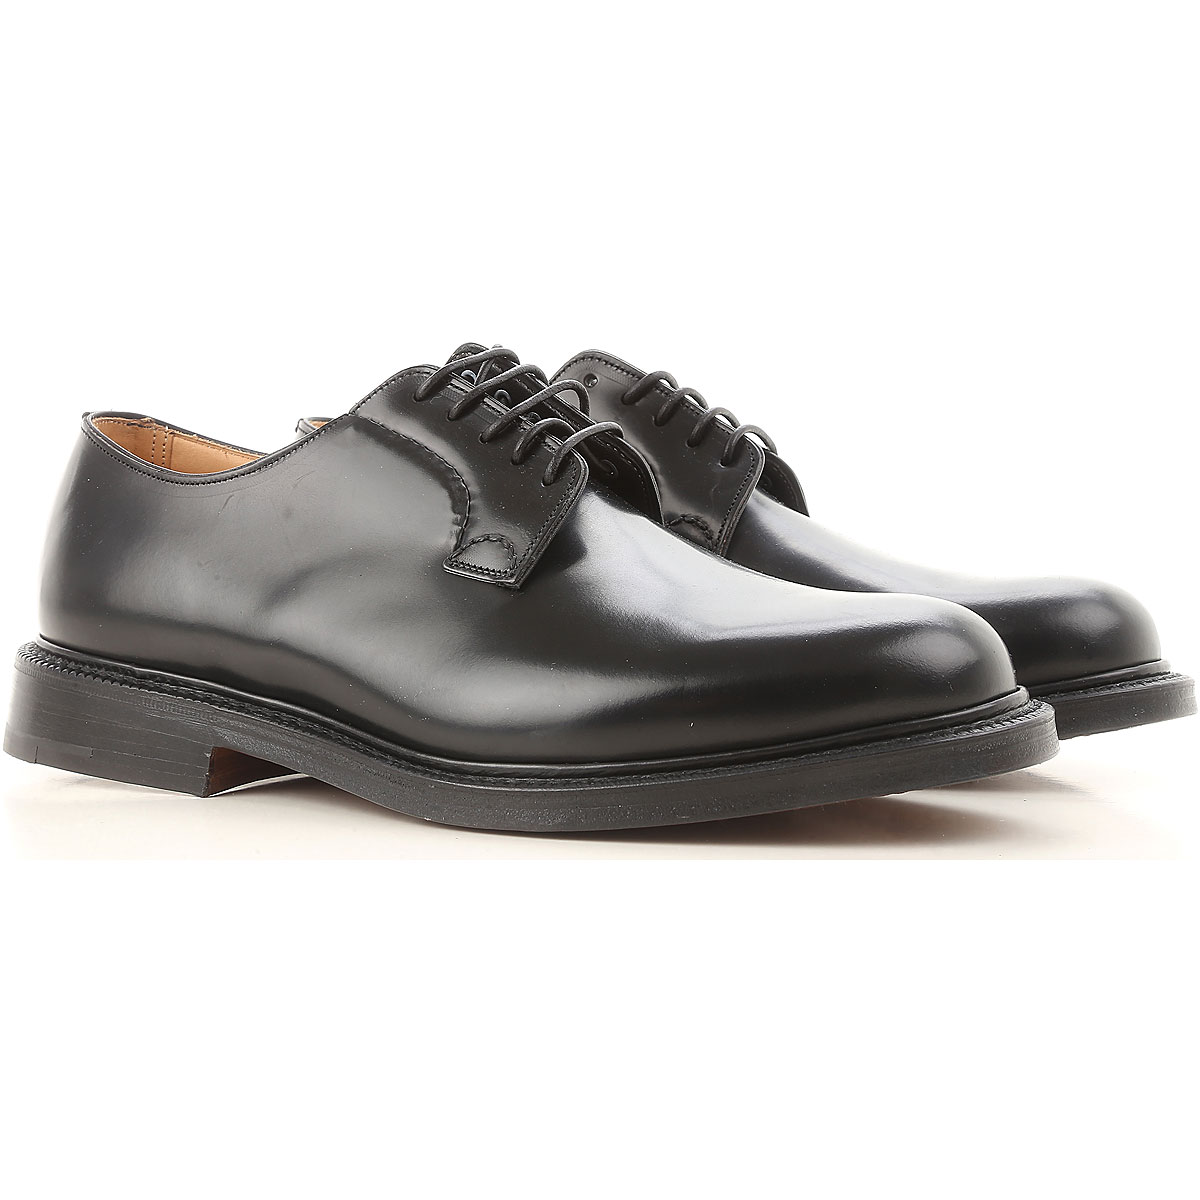 Church's Lace Up Shoes for Men Oxfords Derbies and Brogues On Sale USA - GOOFASH